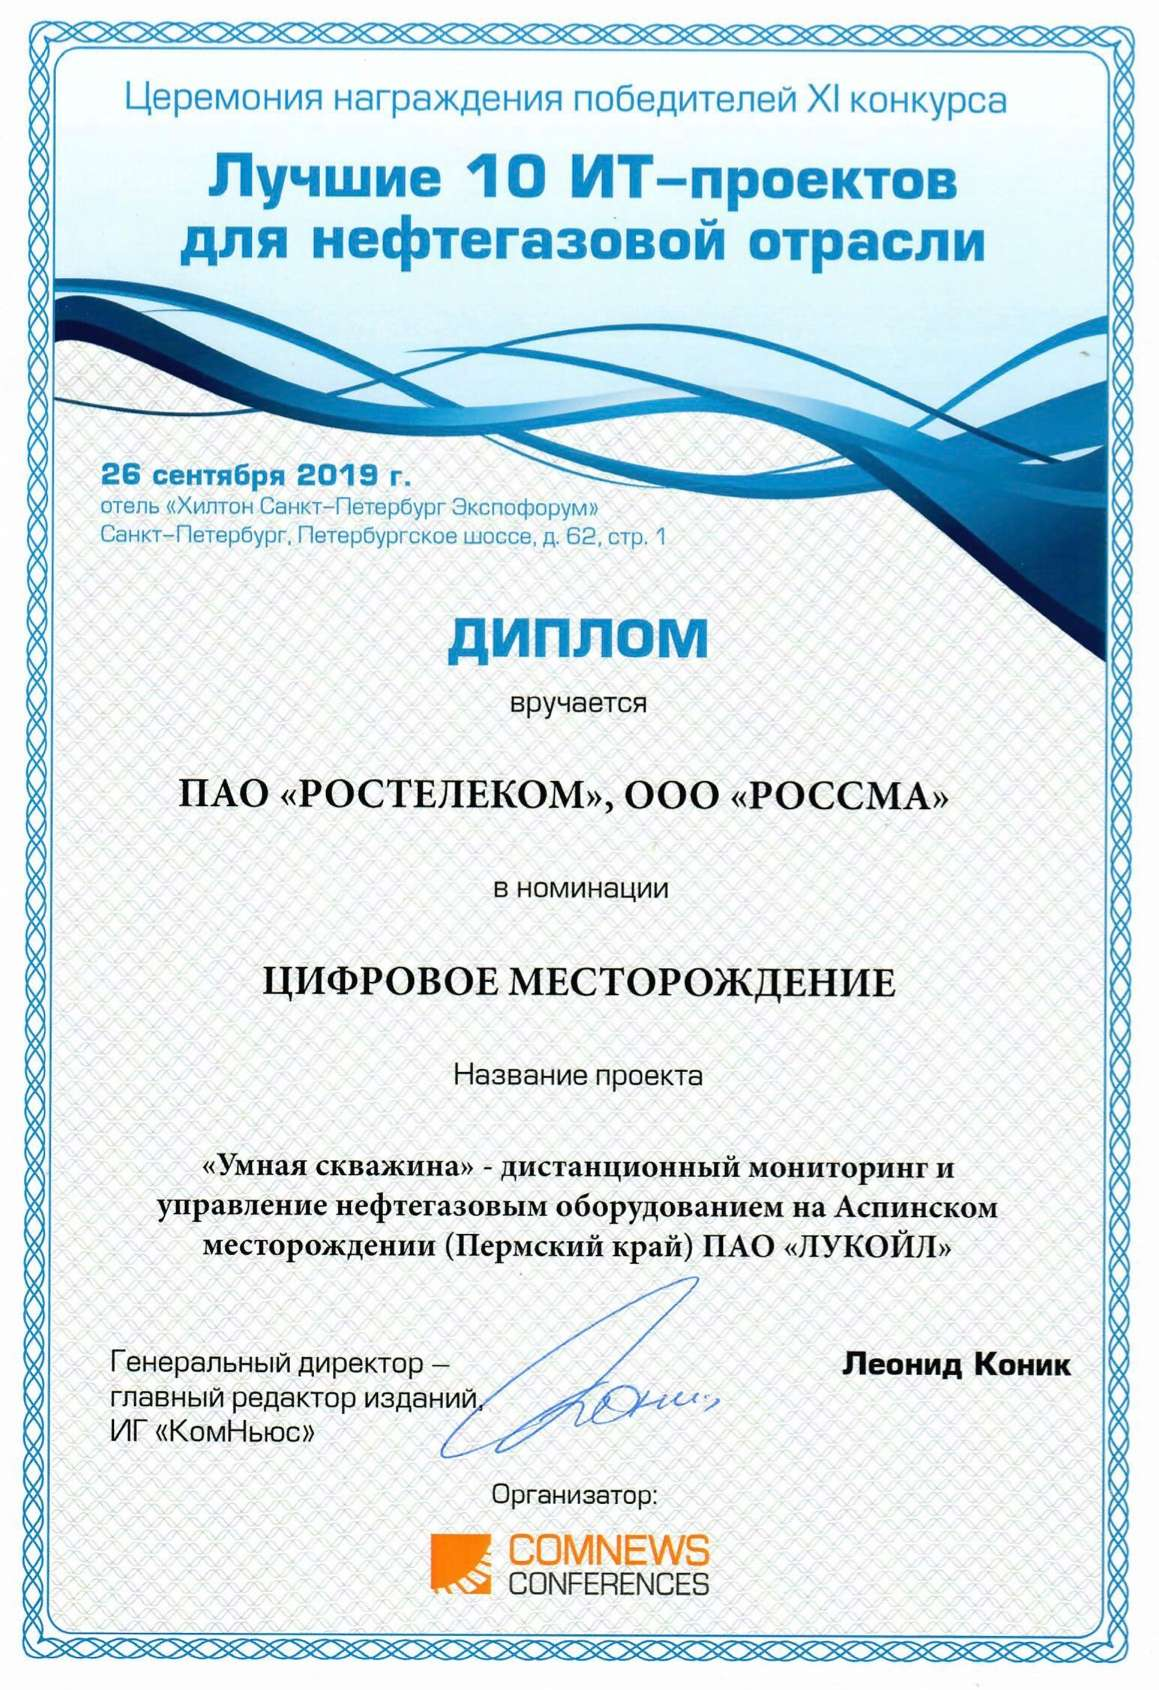 The project of ROSSMA company entered the TOP-10 Best IT Projects for Oil and Gas Industry